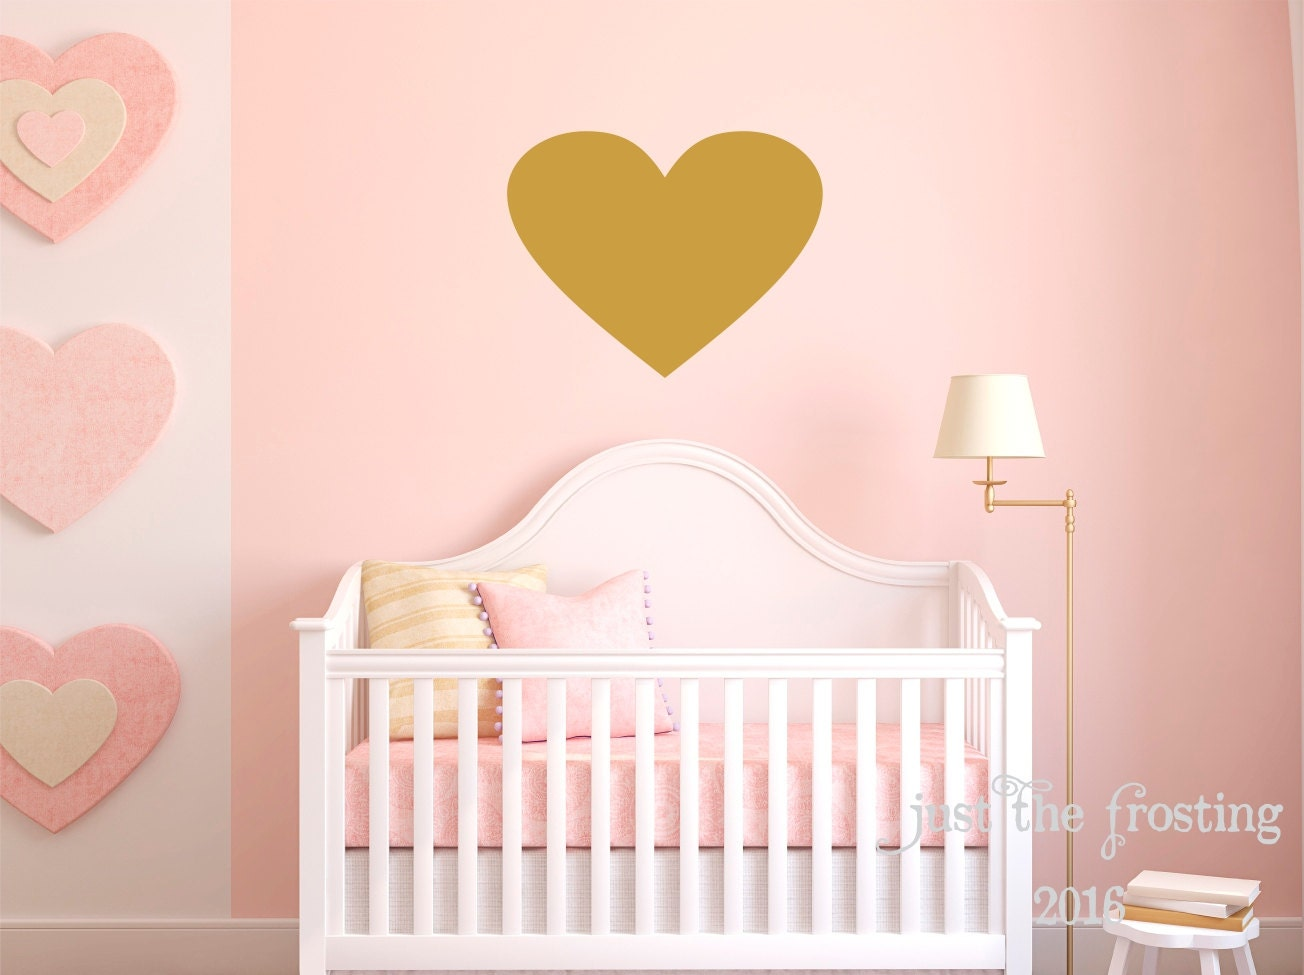 Gold heart wall decal large heart decal gold decor heart for Cute gold heart wall decals